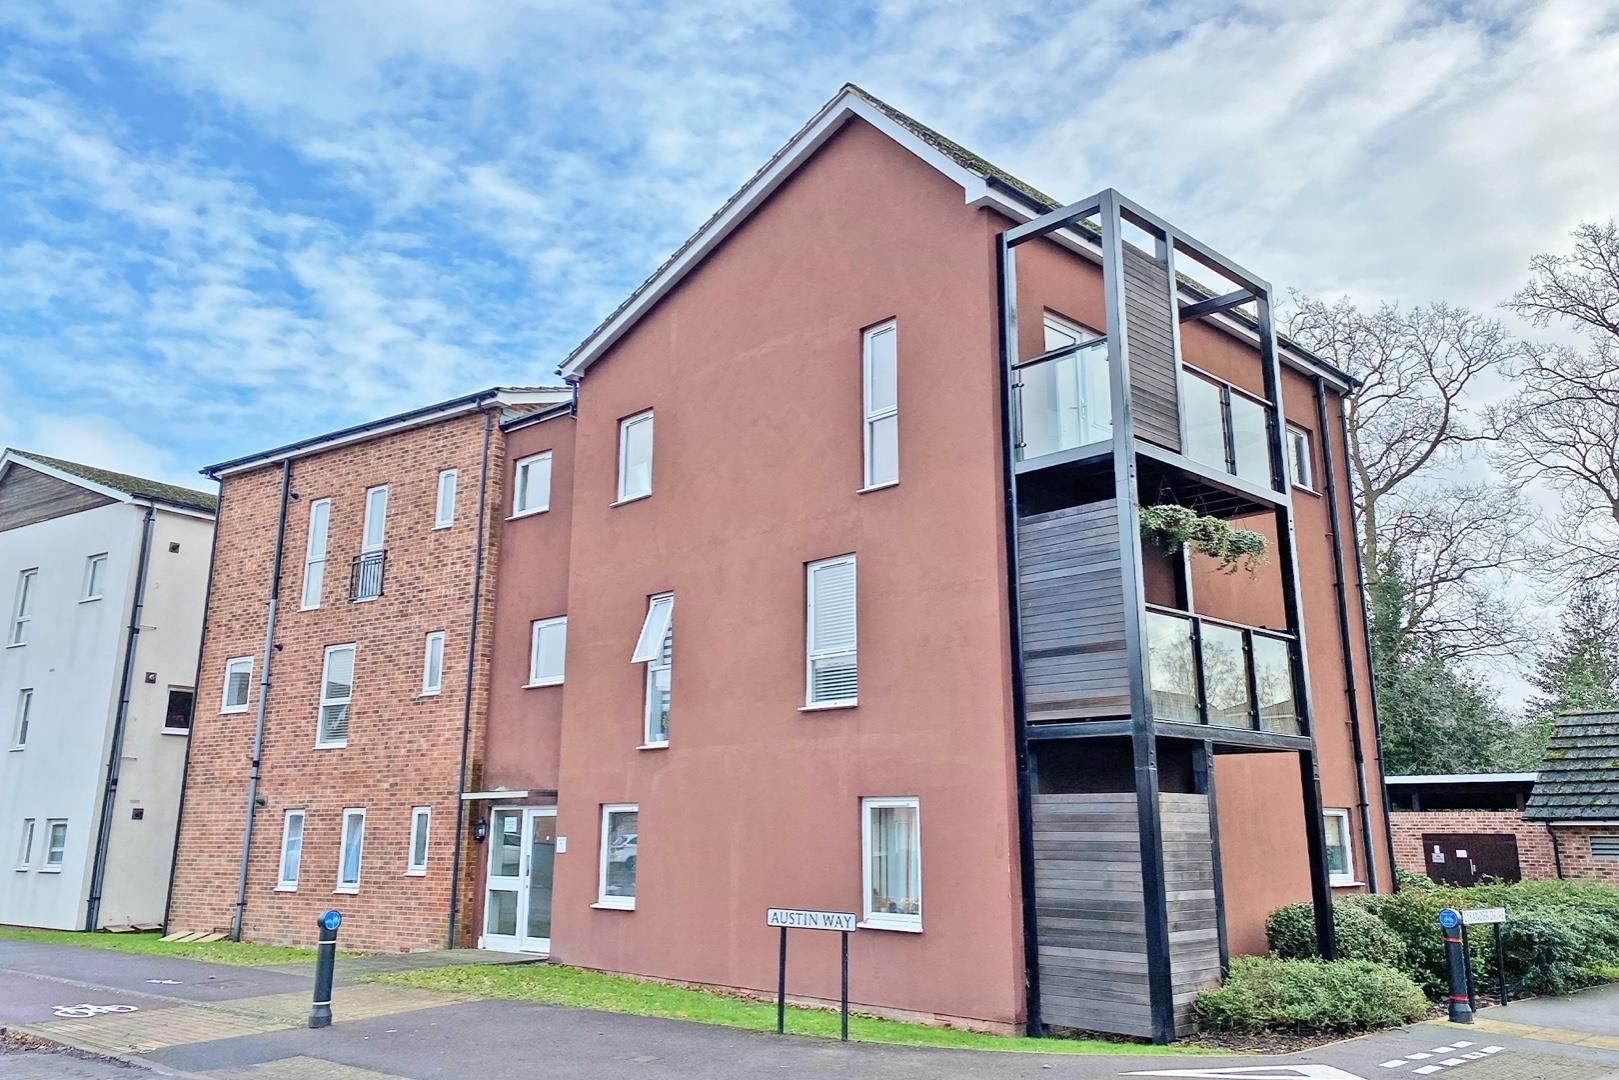 2 bed house for sale in The Parks, RG12